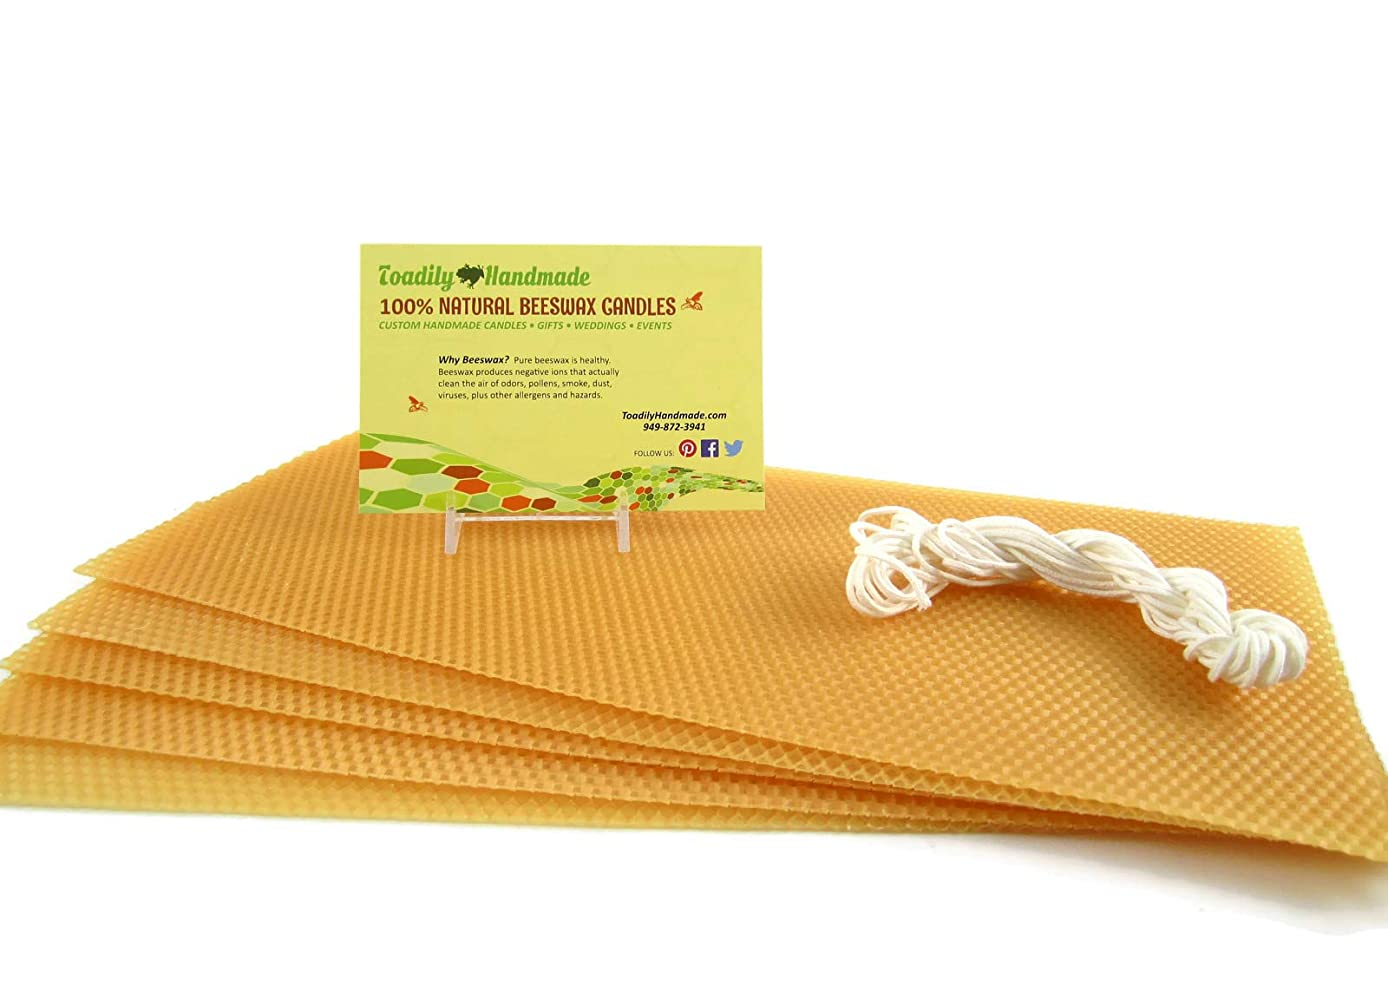 Make Your Own Beeswax Candle Starter Kit - Includes 5 Full Size 100% Beeswax Honeycomb Sheets in Gold and Approx. 6 Yards of Cotton Wick. Each Beeswax Sheet Measures Approx. 8